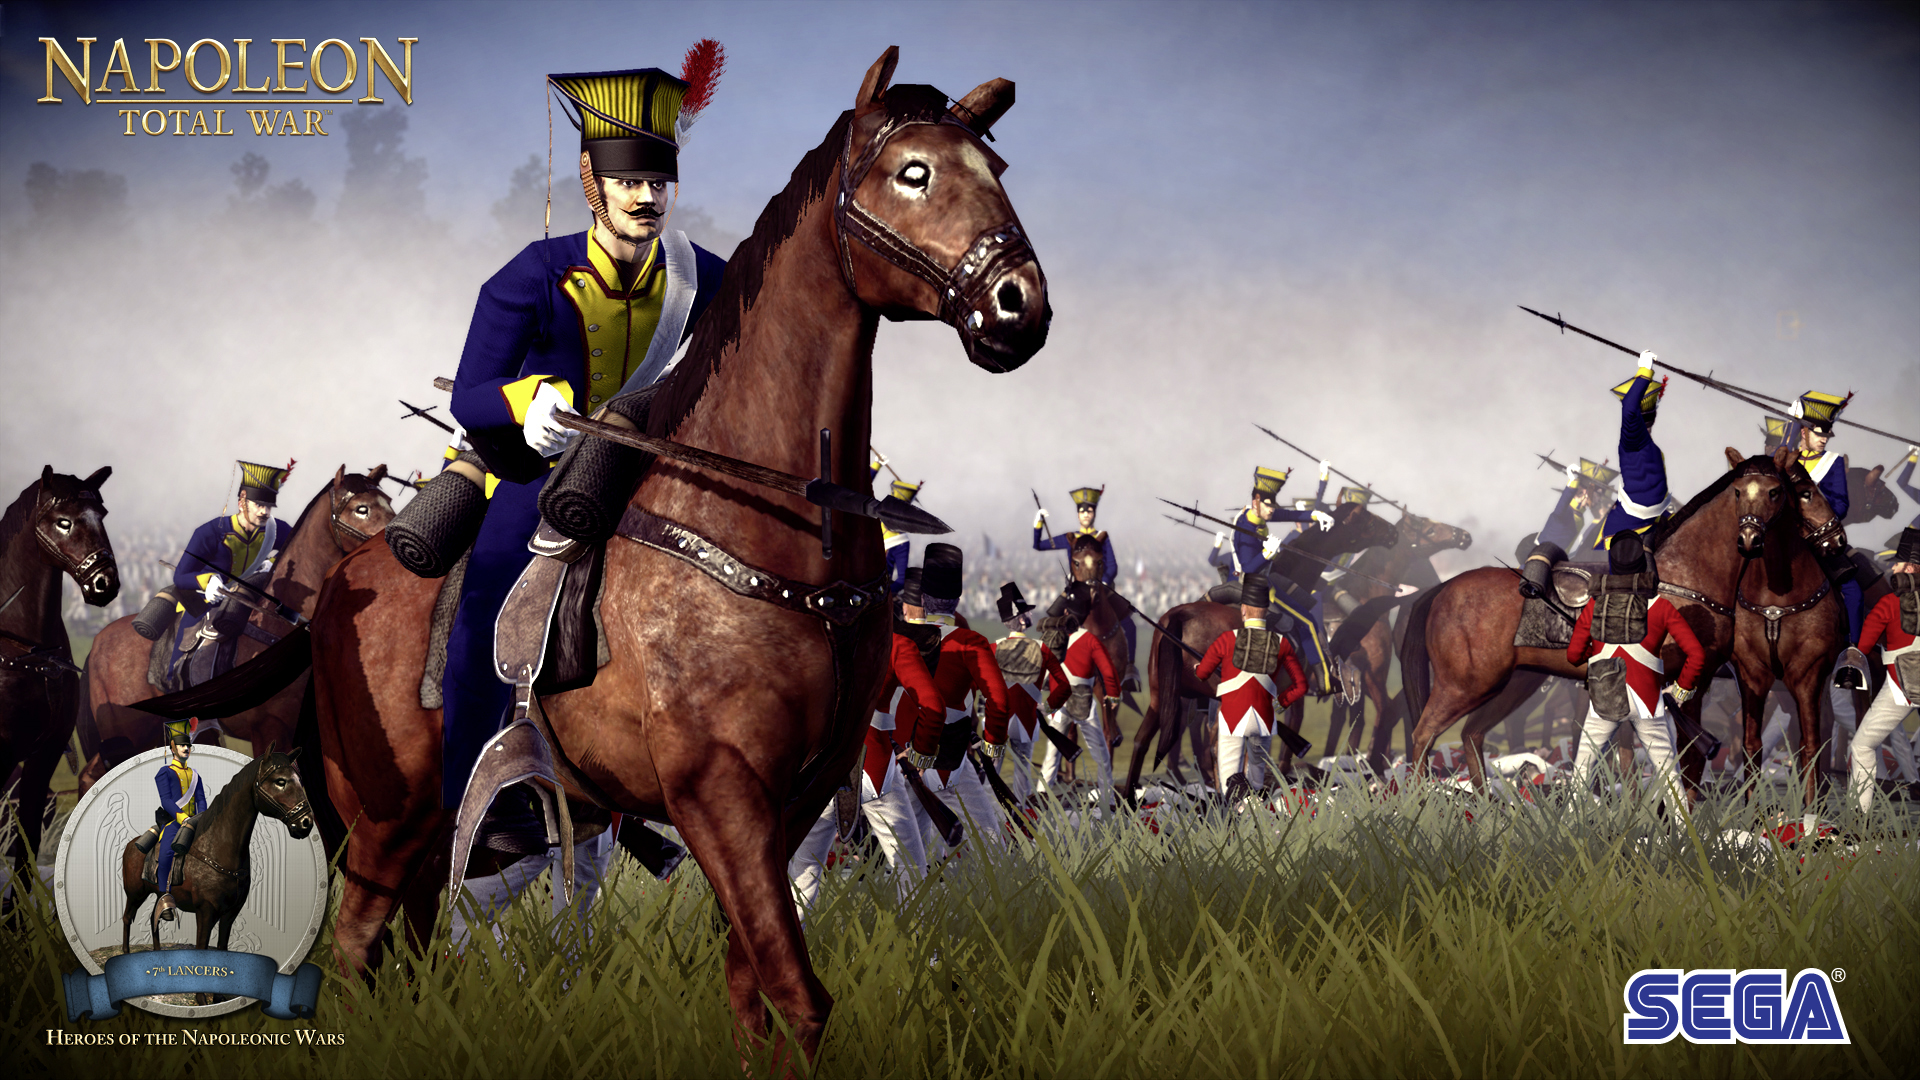 Napoleon: Total War - Heroes of the Napoleonic Wars screenshot